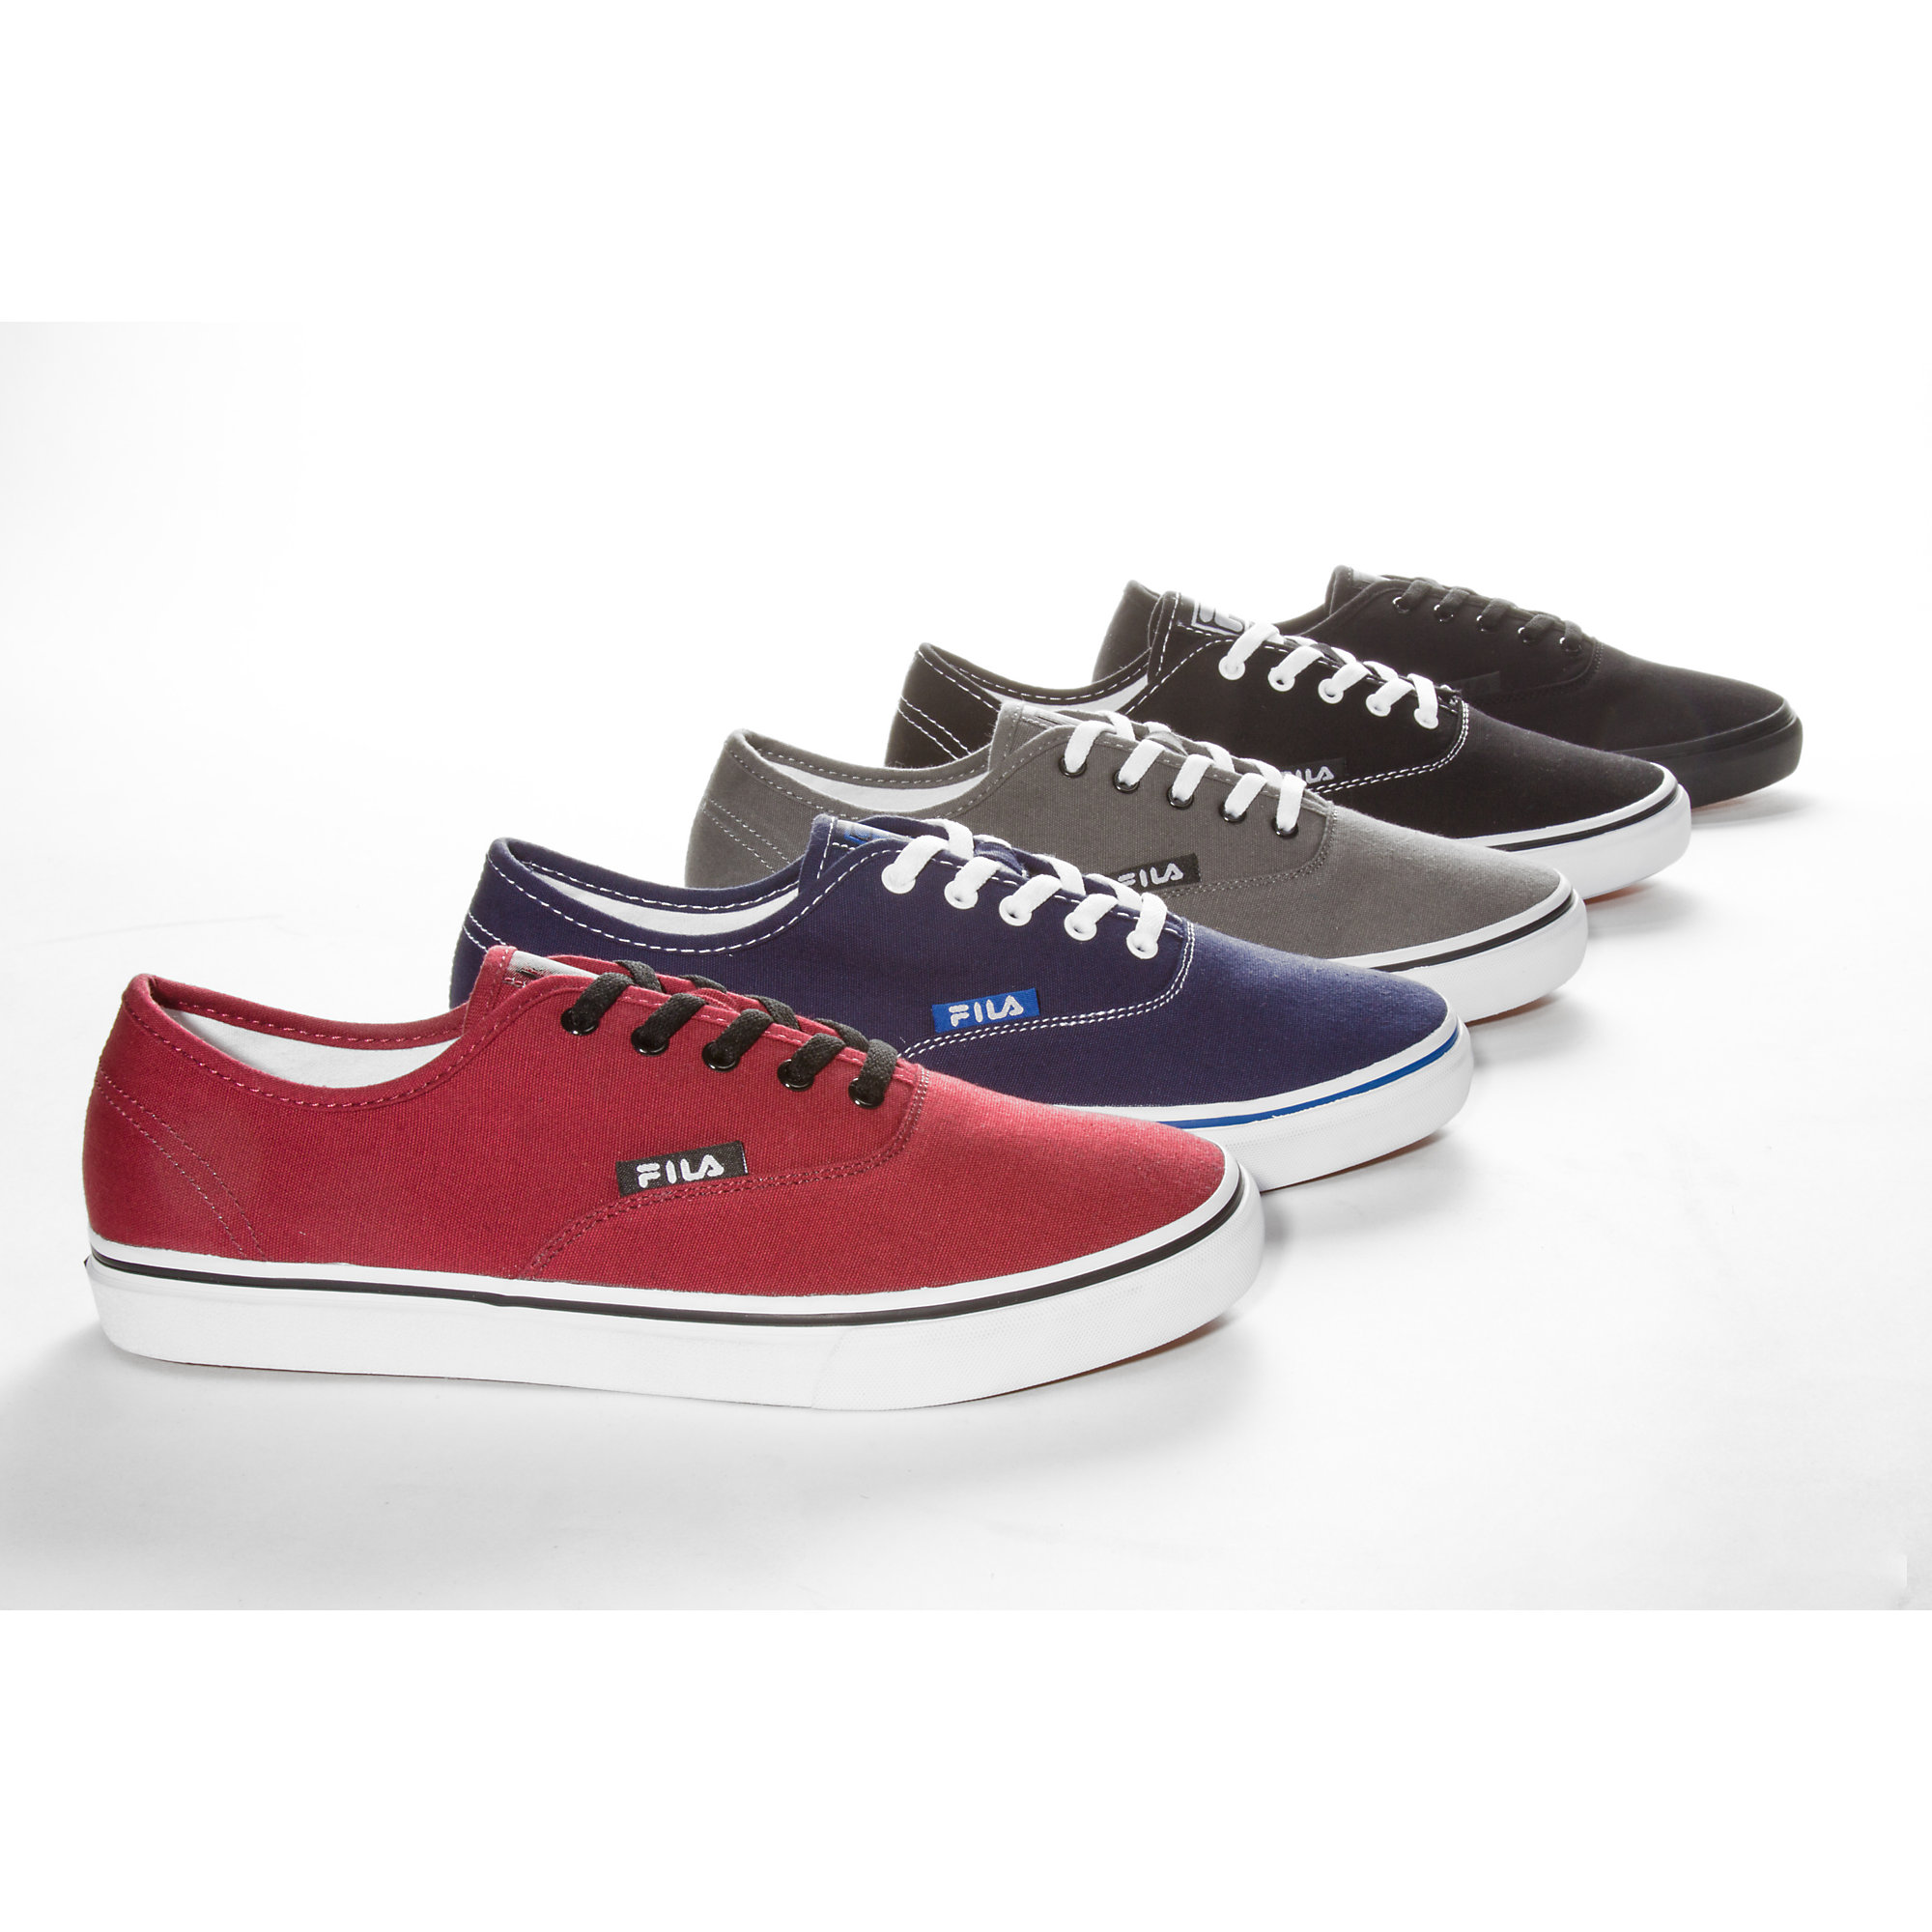 FILA-Mens-Classic-Canvas-Shoes